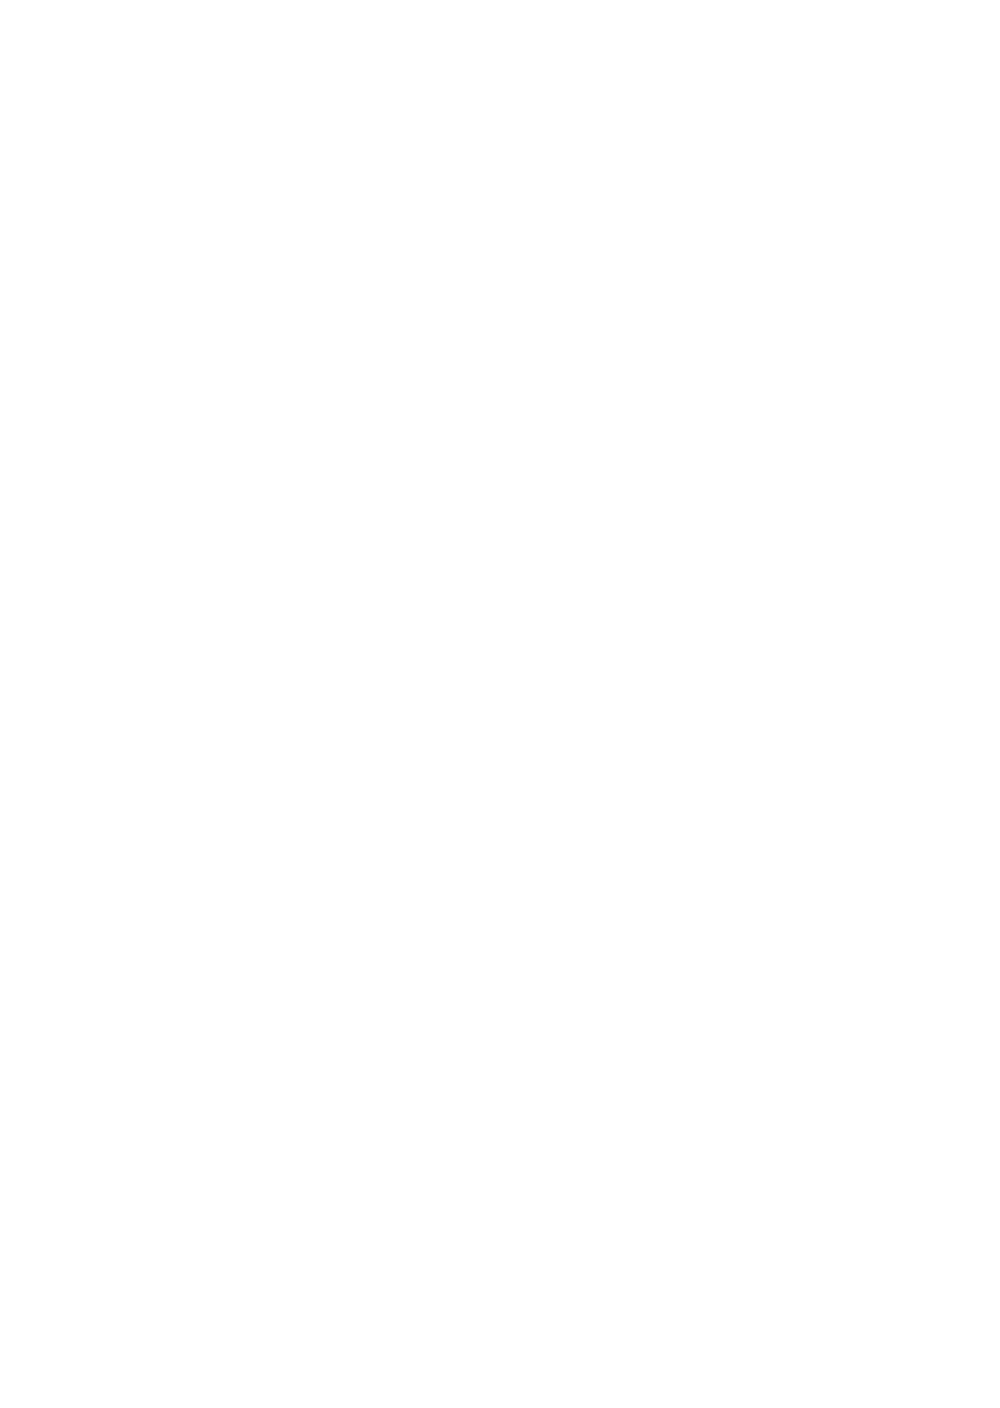 hearing aid repair_circle icon white outline_with text-01.png